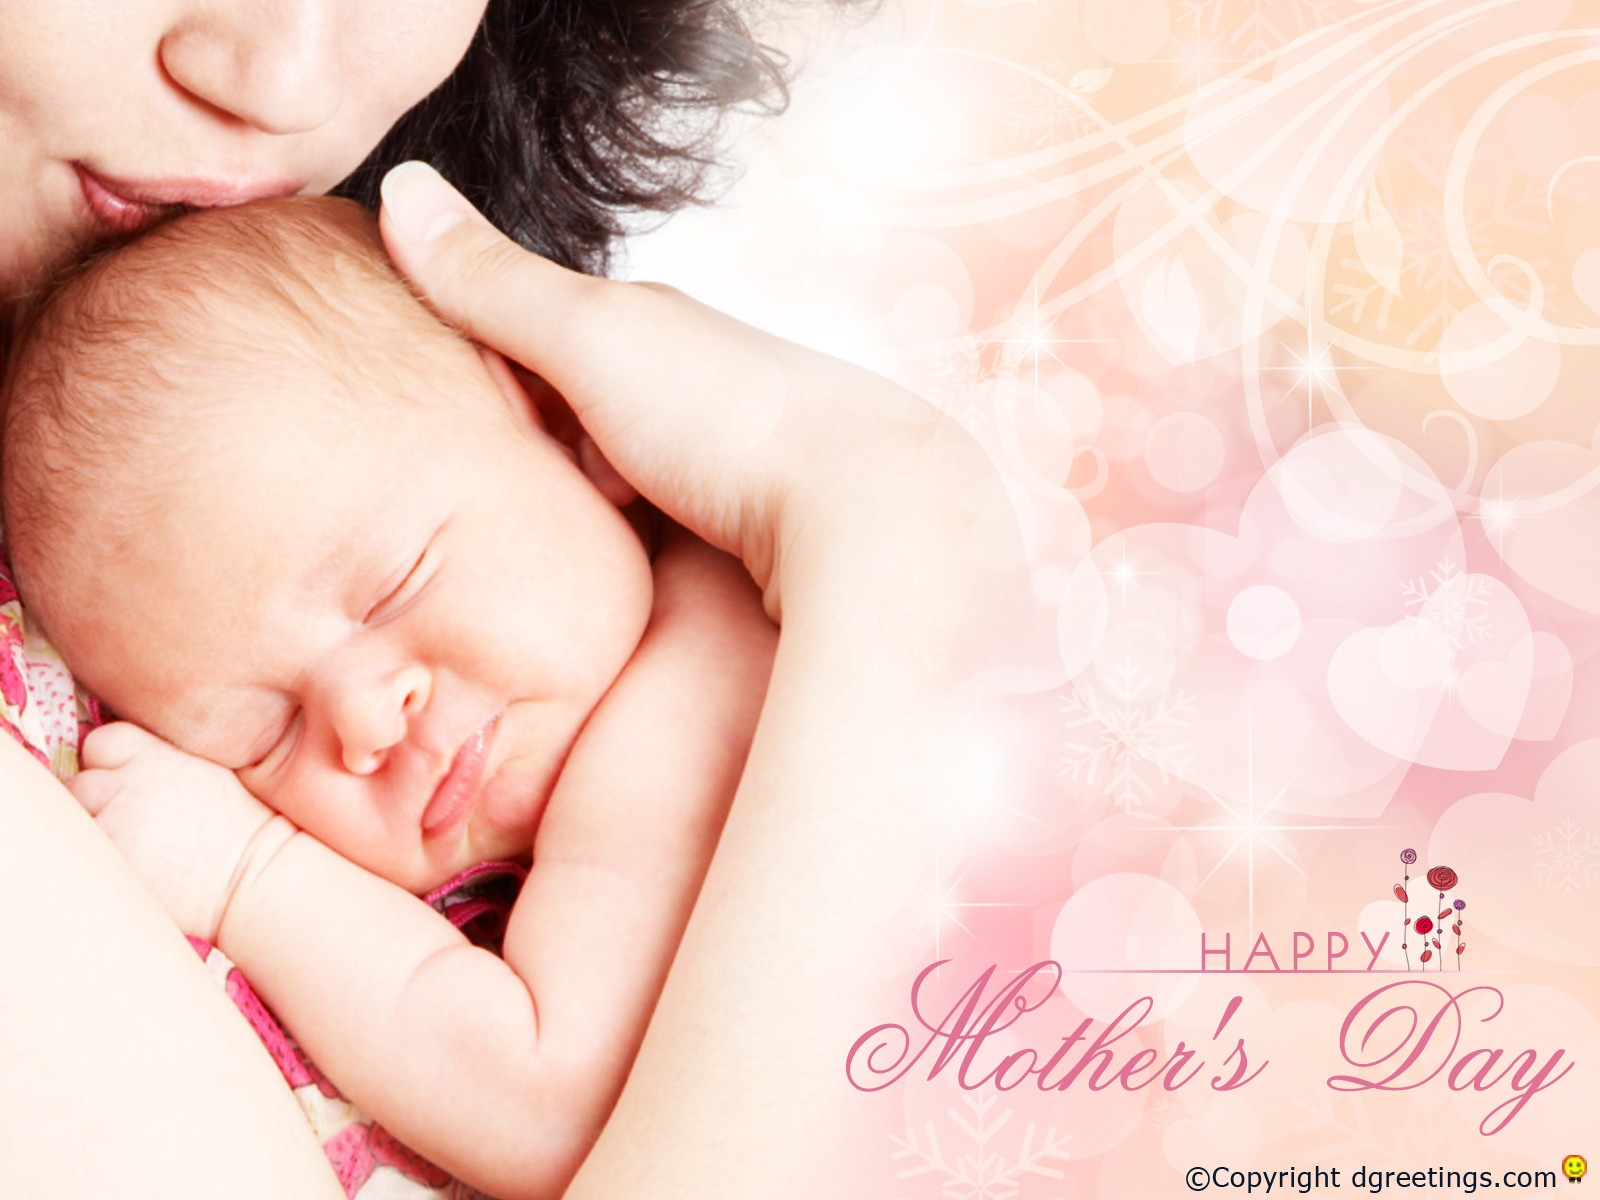 Wishing ALL Mothers, a wonderful Mother's Day Weekend. God Bless you all!